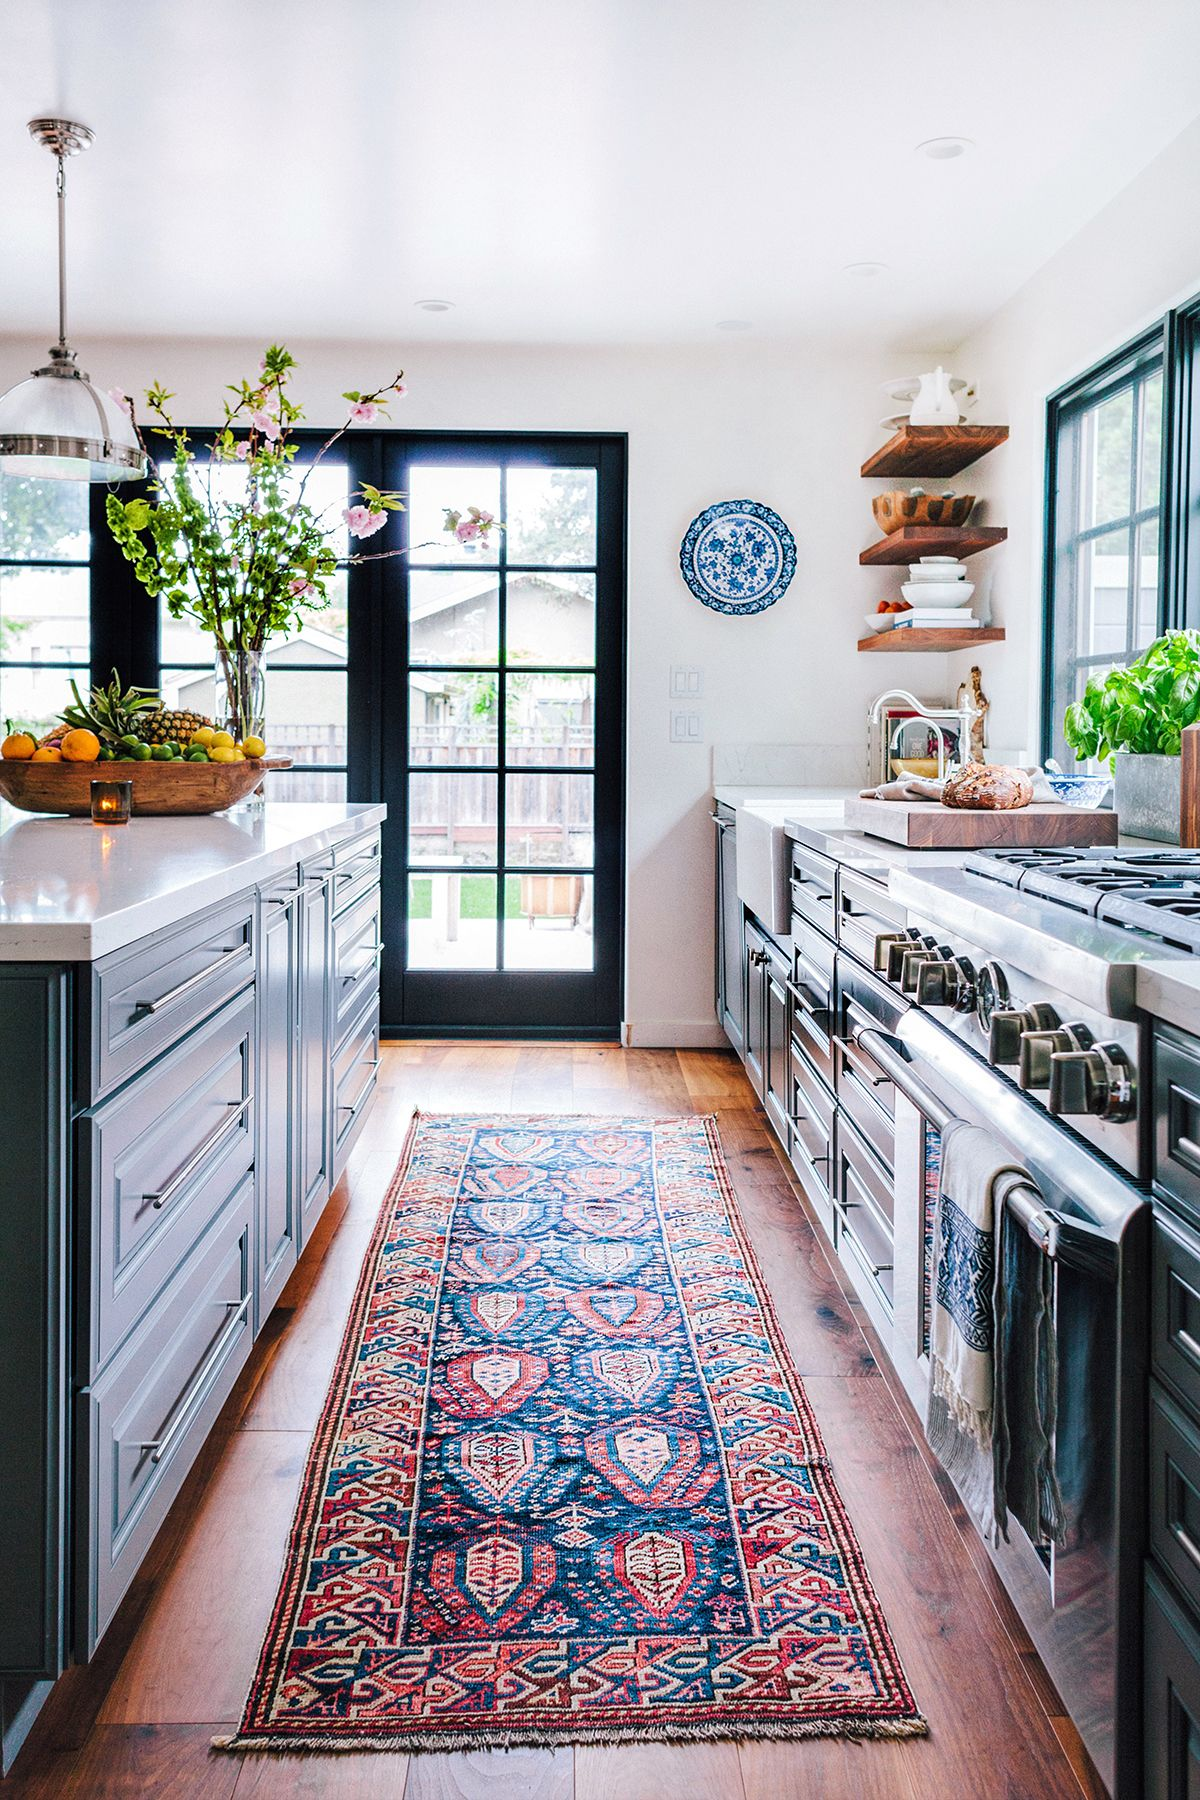 Finding The Right Antique Rug Honestly Wtf Home Kitchens